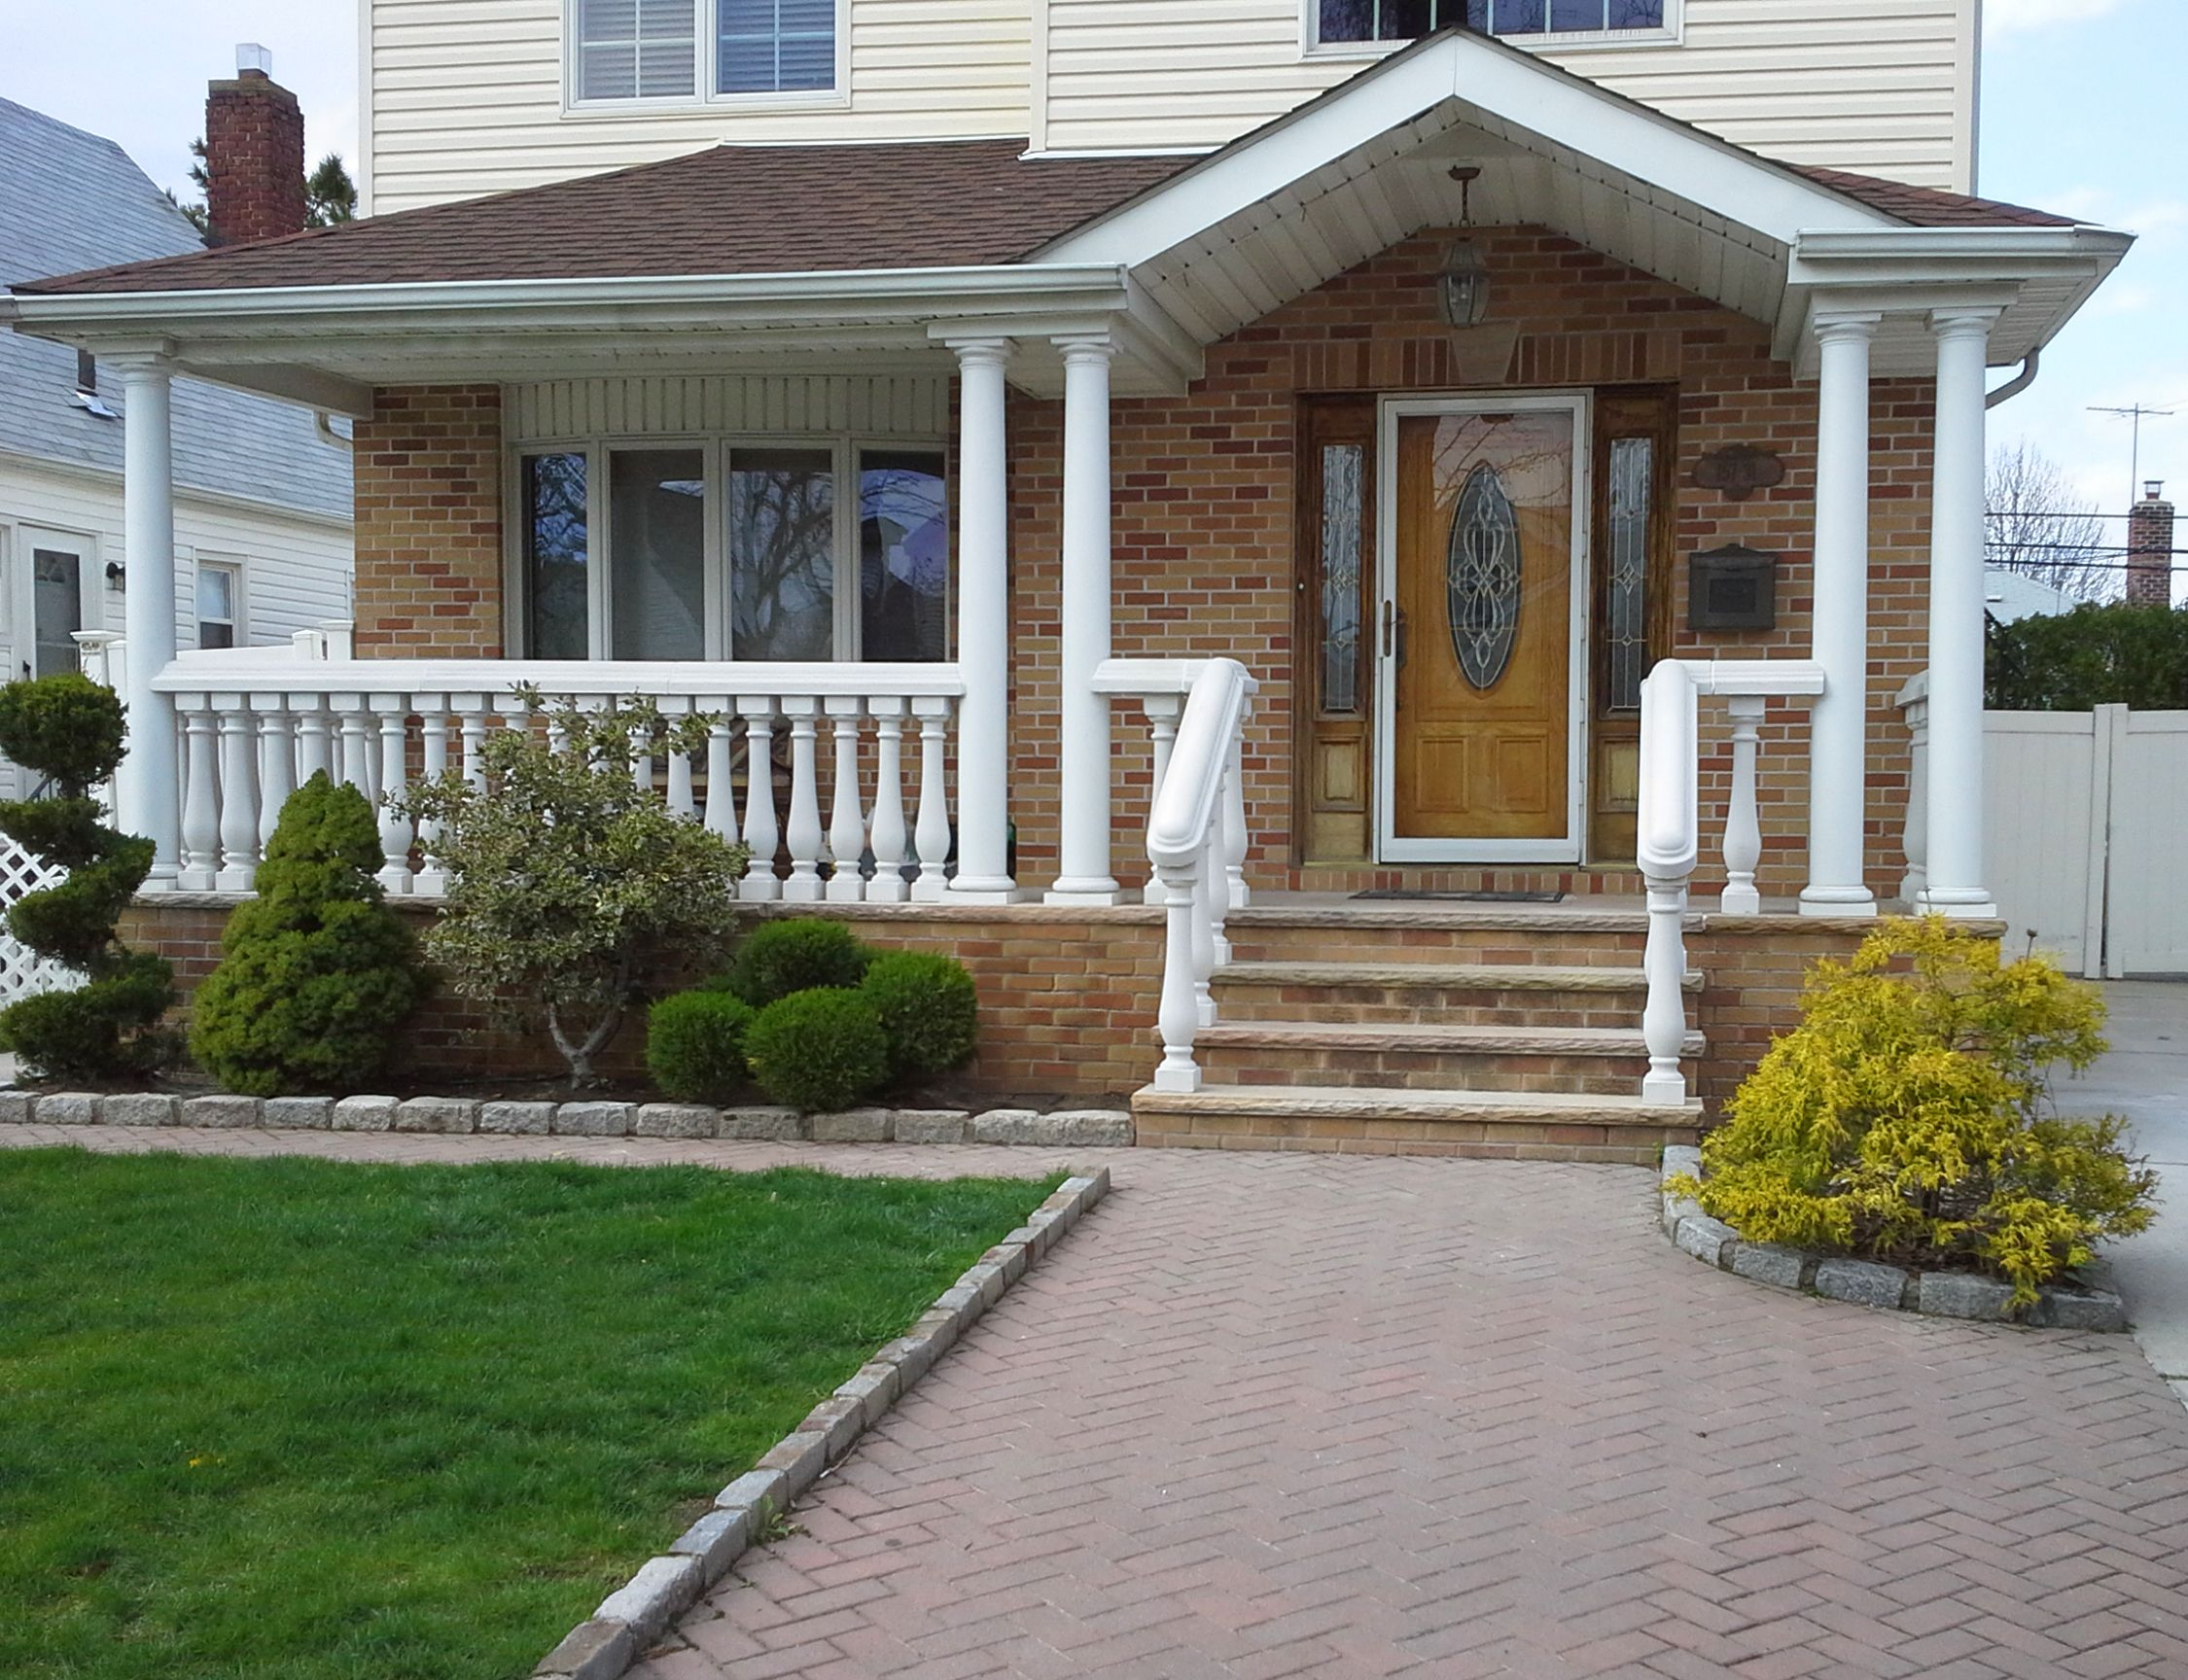 Concrete Balustrade System For Front Porch And Entrance Of Home Www Coralcast Com Porch Balusters Front Porch Steps Victorian Porch